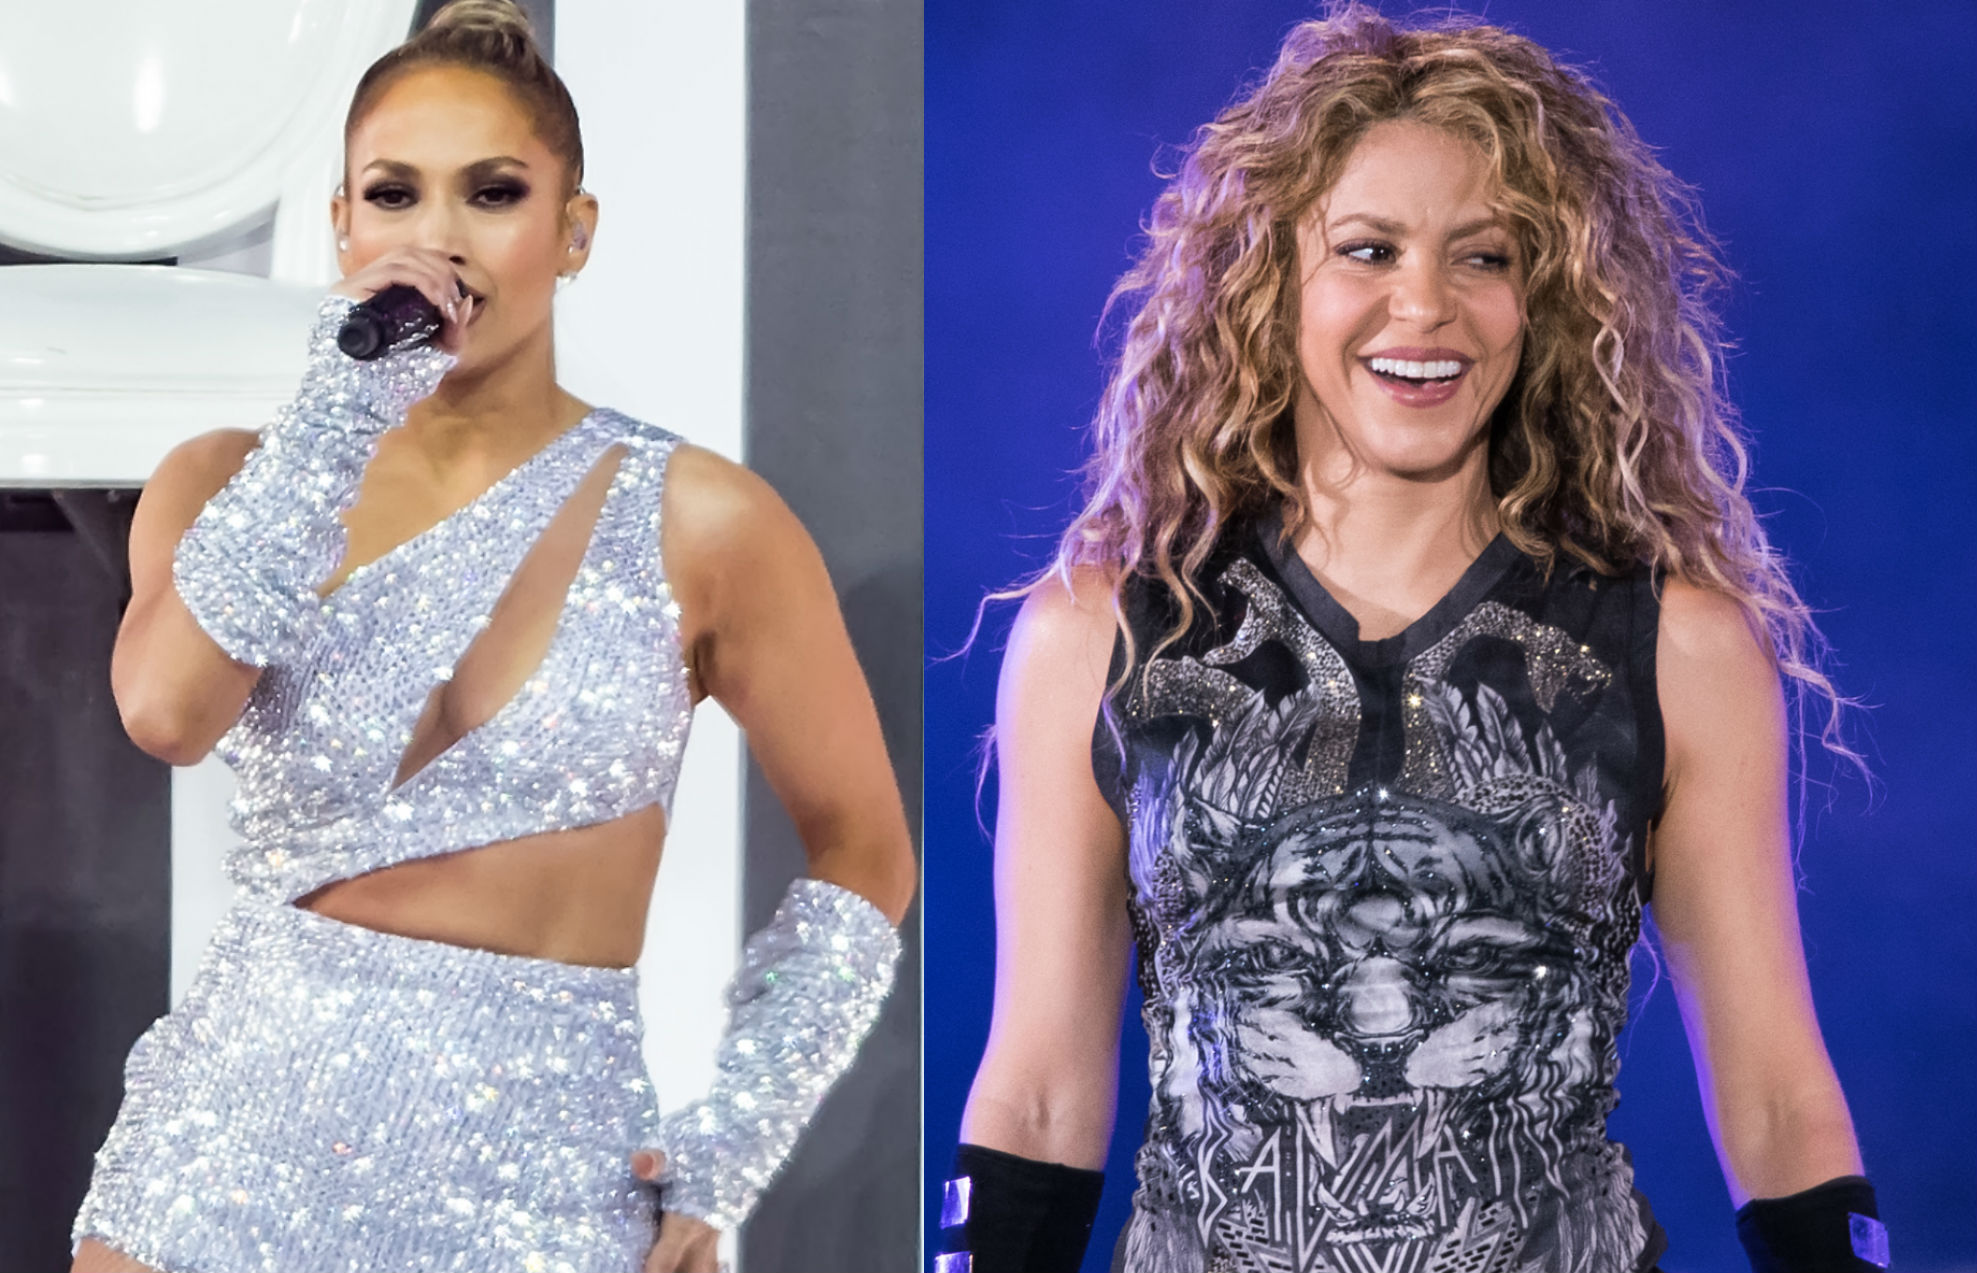 Halftime Show Thanksgiving 2020.Shakira And Jennifer Lopez To Perform At Super Bowl Halftime